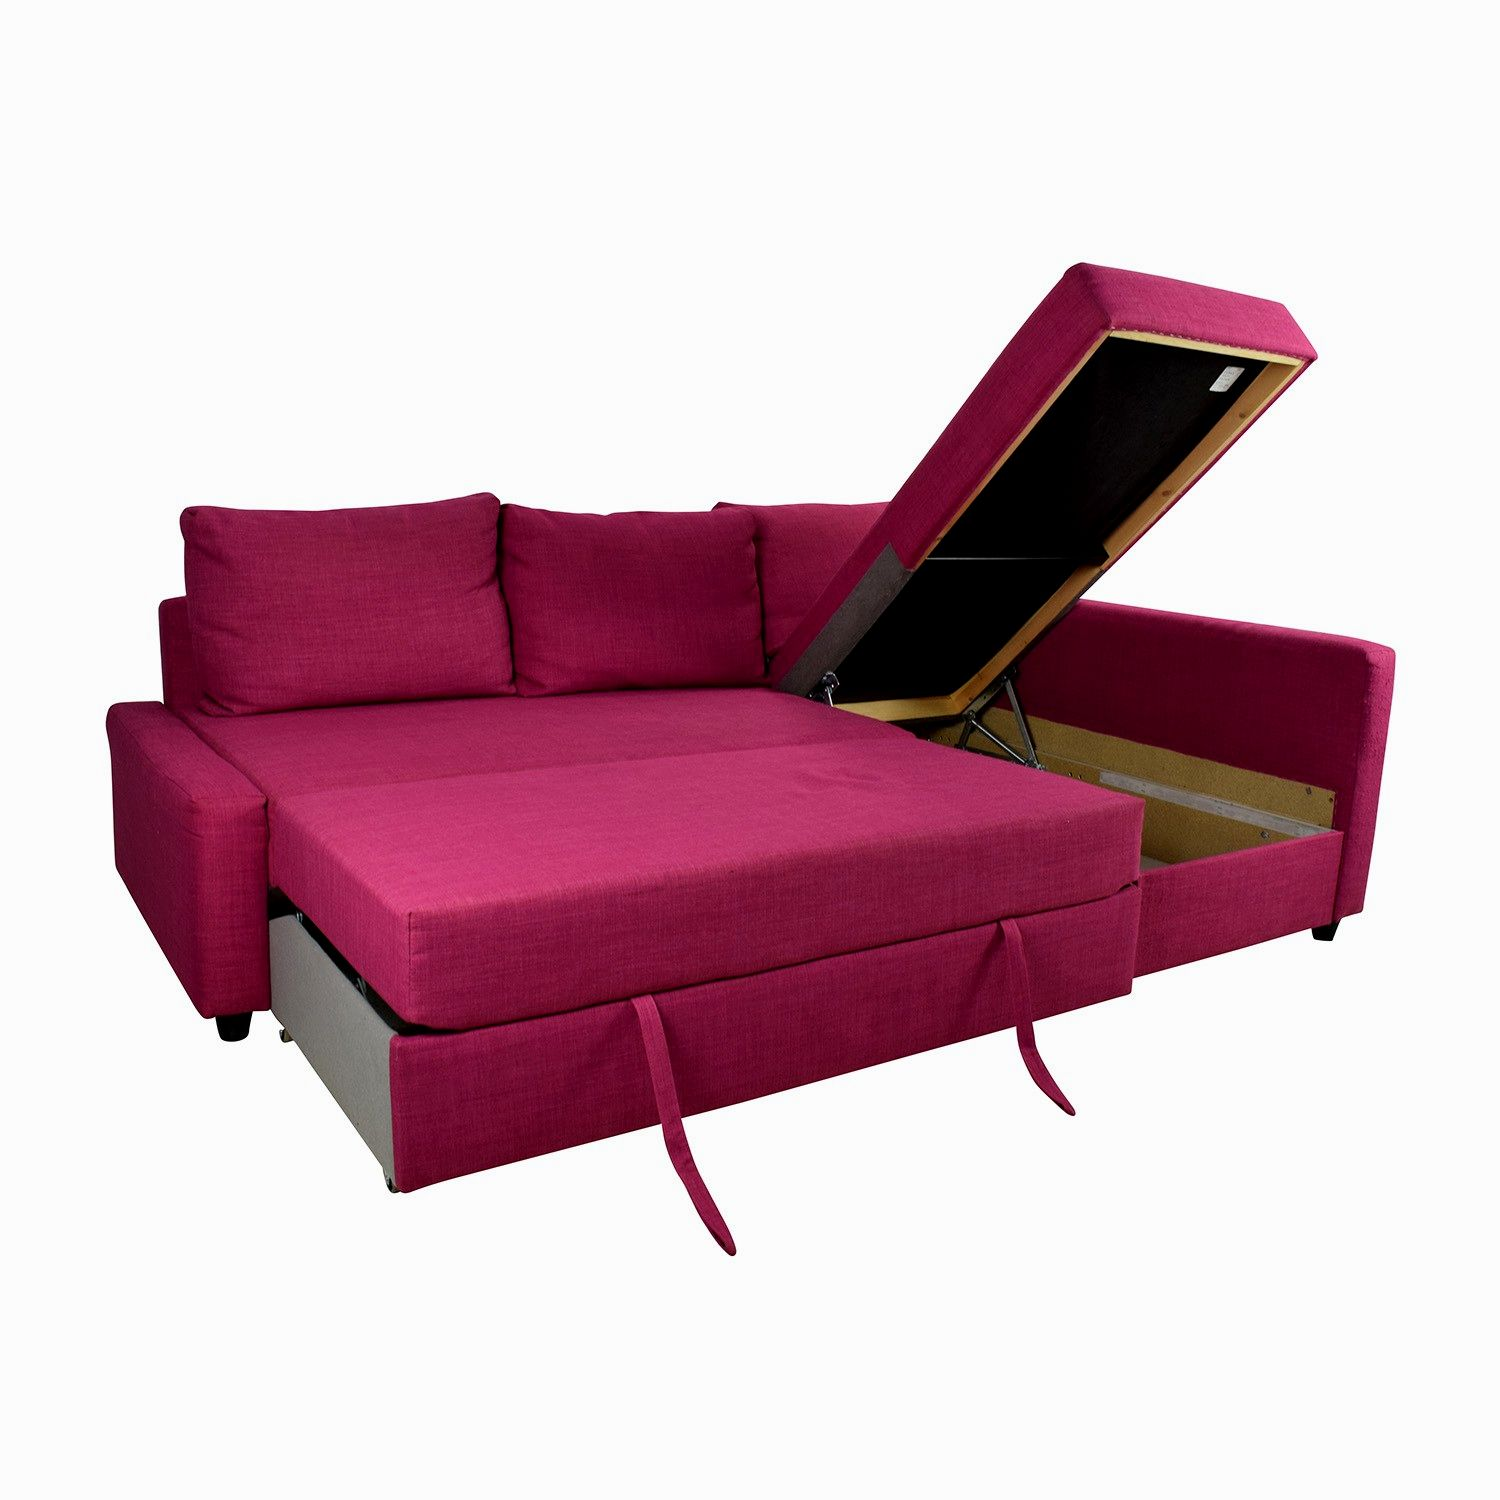 inspirational twin sleeper sofa ikea concept-Fantastic Twin Sleeper sofa Ikea Pattern